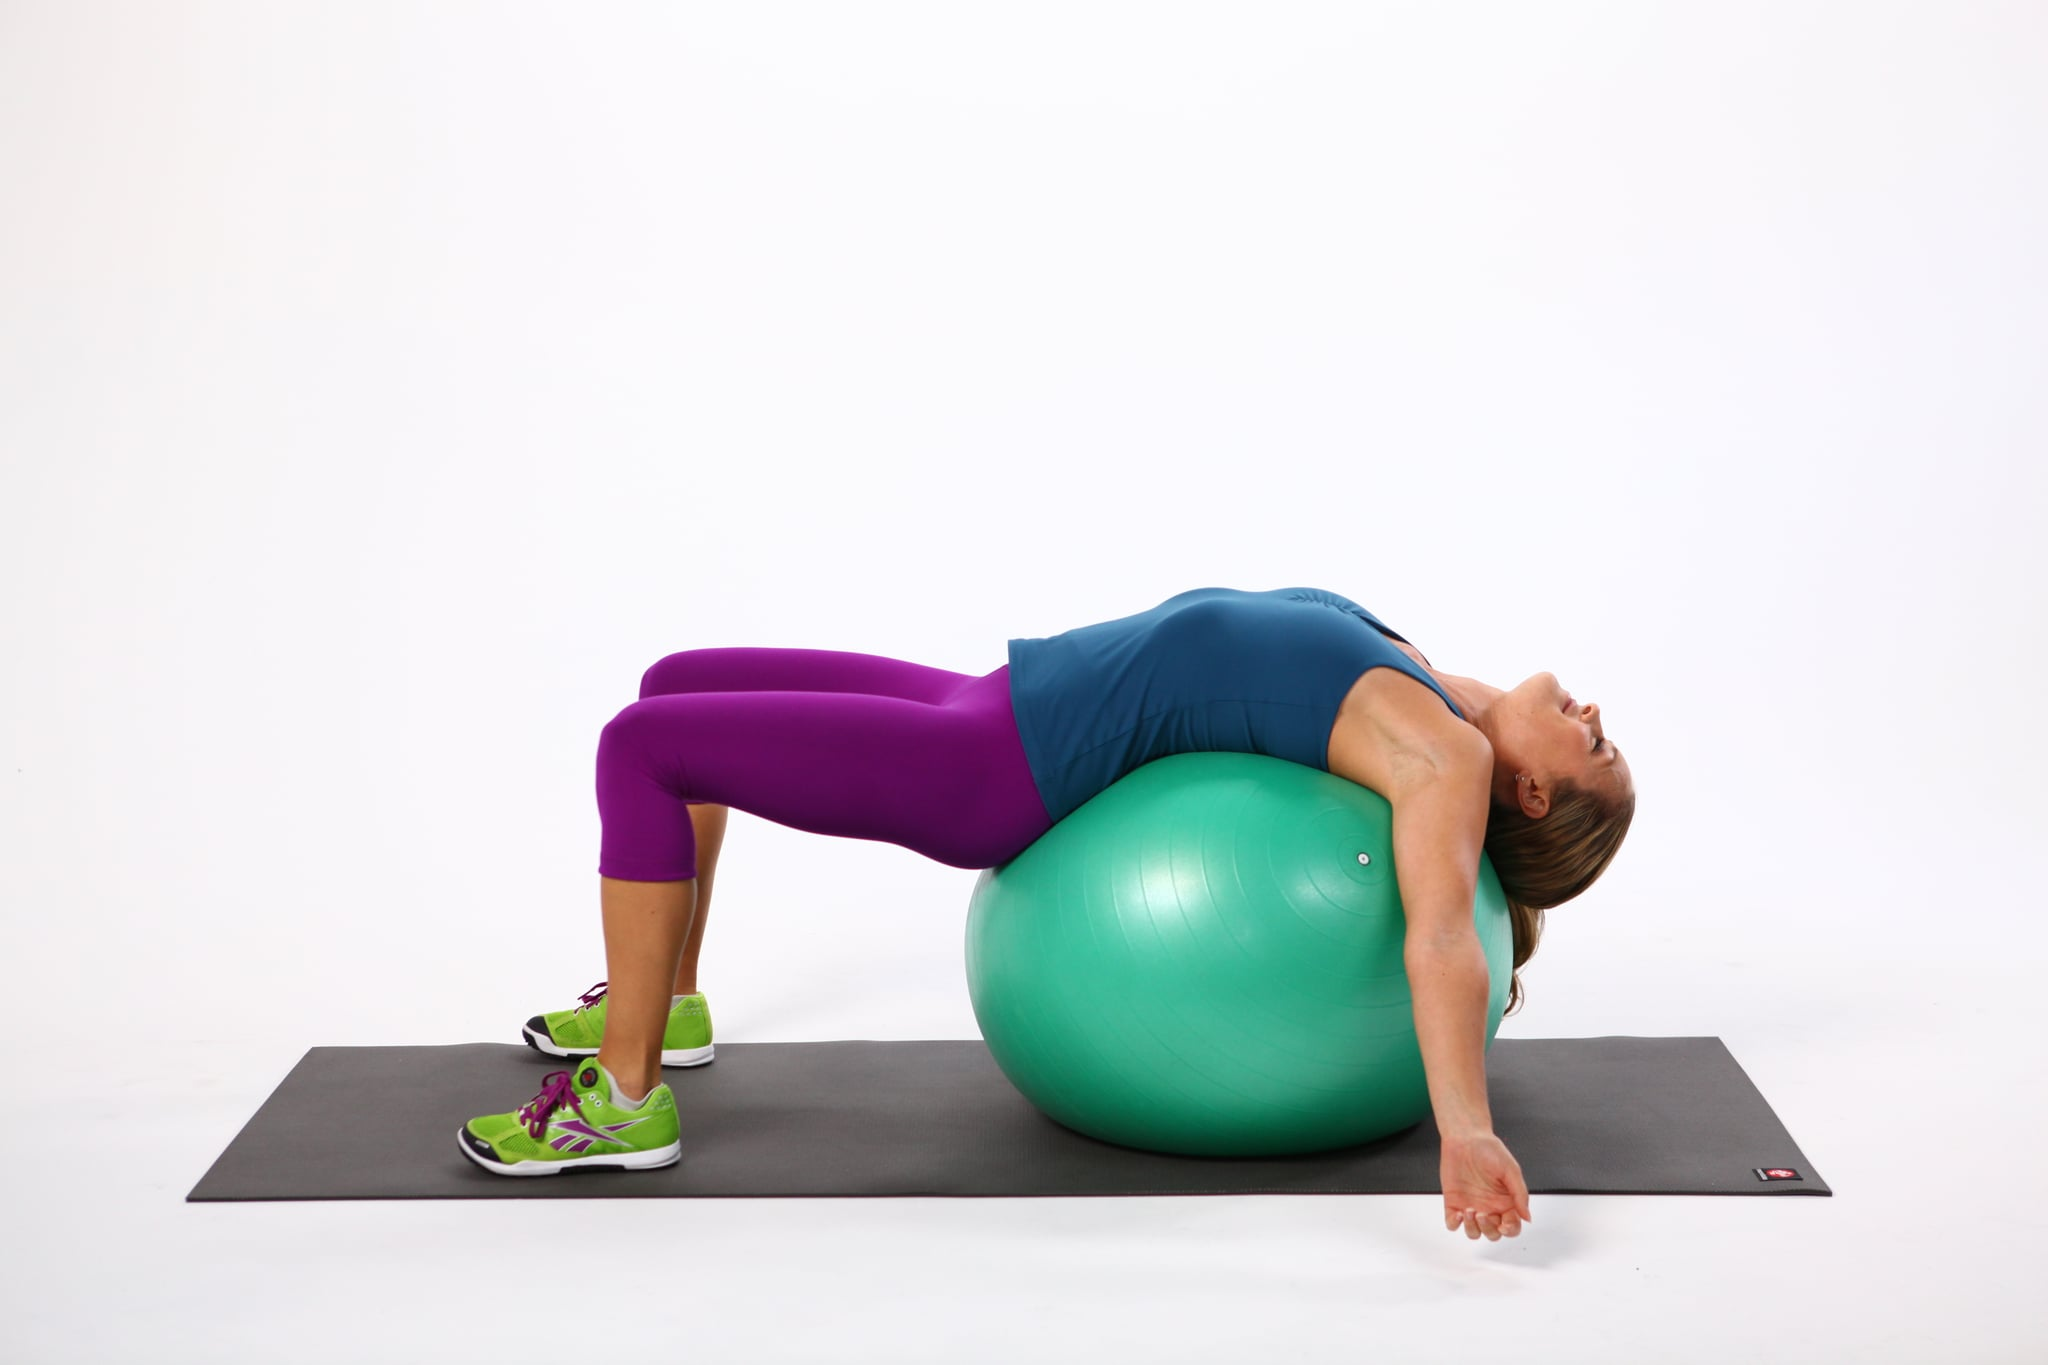 How to Stretch Your Back Using an Exercise Ball